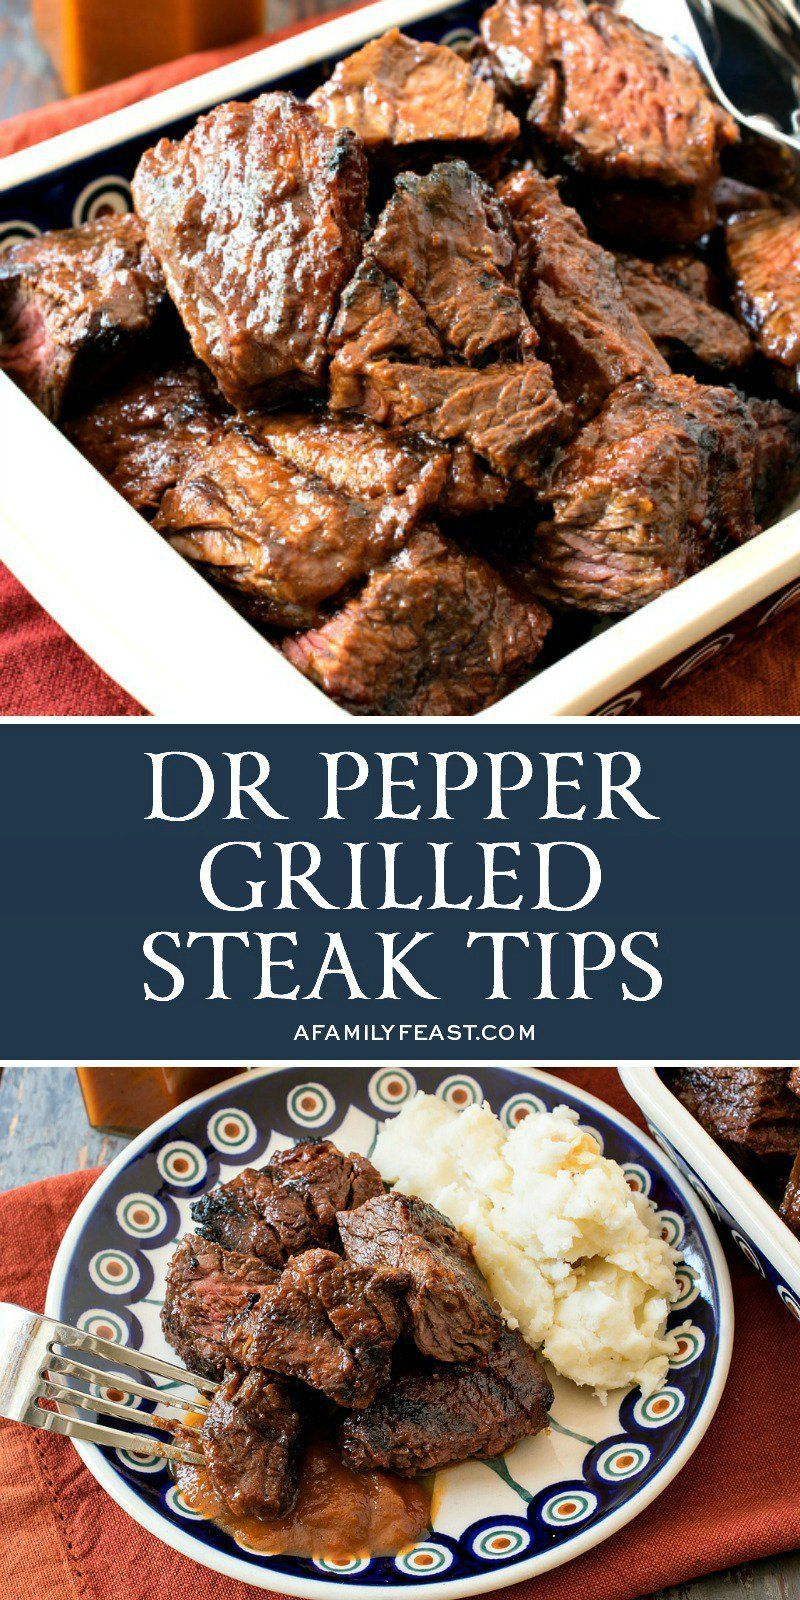 Pepper Grilled Steak Tips Tender, juicy and loaded with flavor, our Dr Pepper Grilled Steak Tips are sure to become one of your favorite ways to cook steak on the grill!Tender, juicy and loaded with flavor, our Dr Pepper Grilled Steak Tips are sure to become one of your favorite ways to cook steak on the grill!